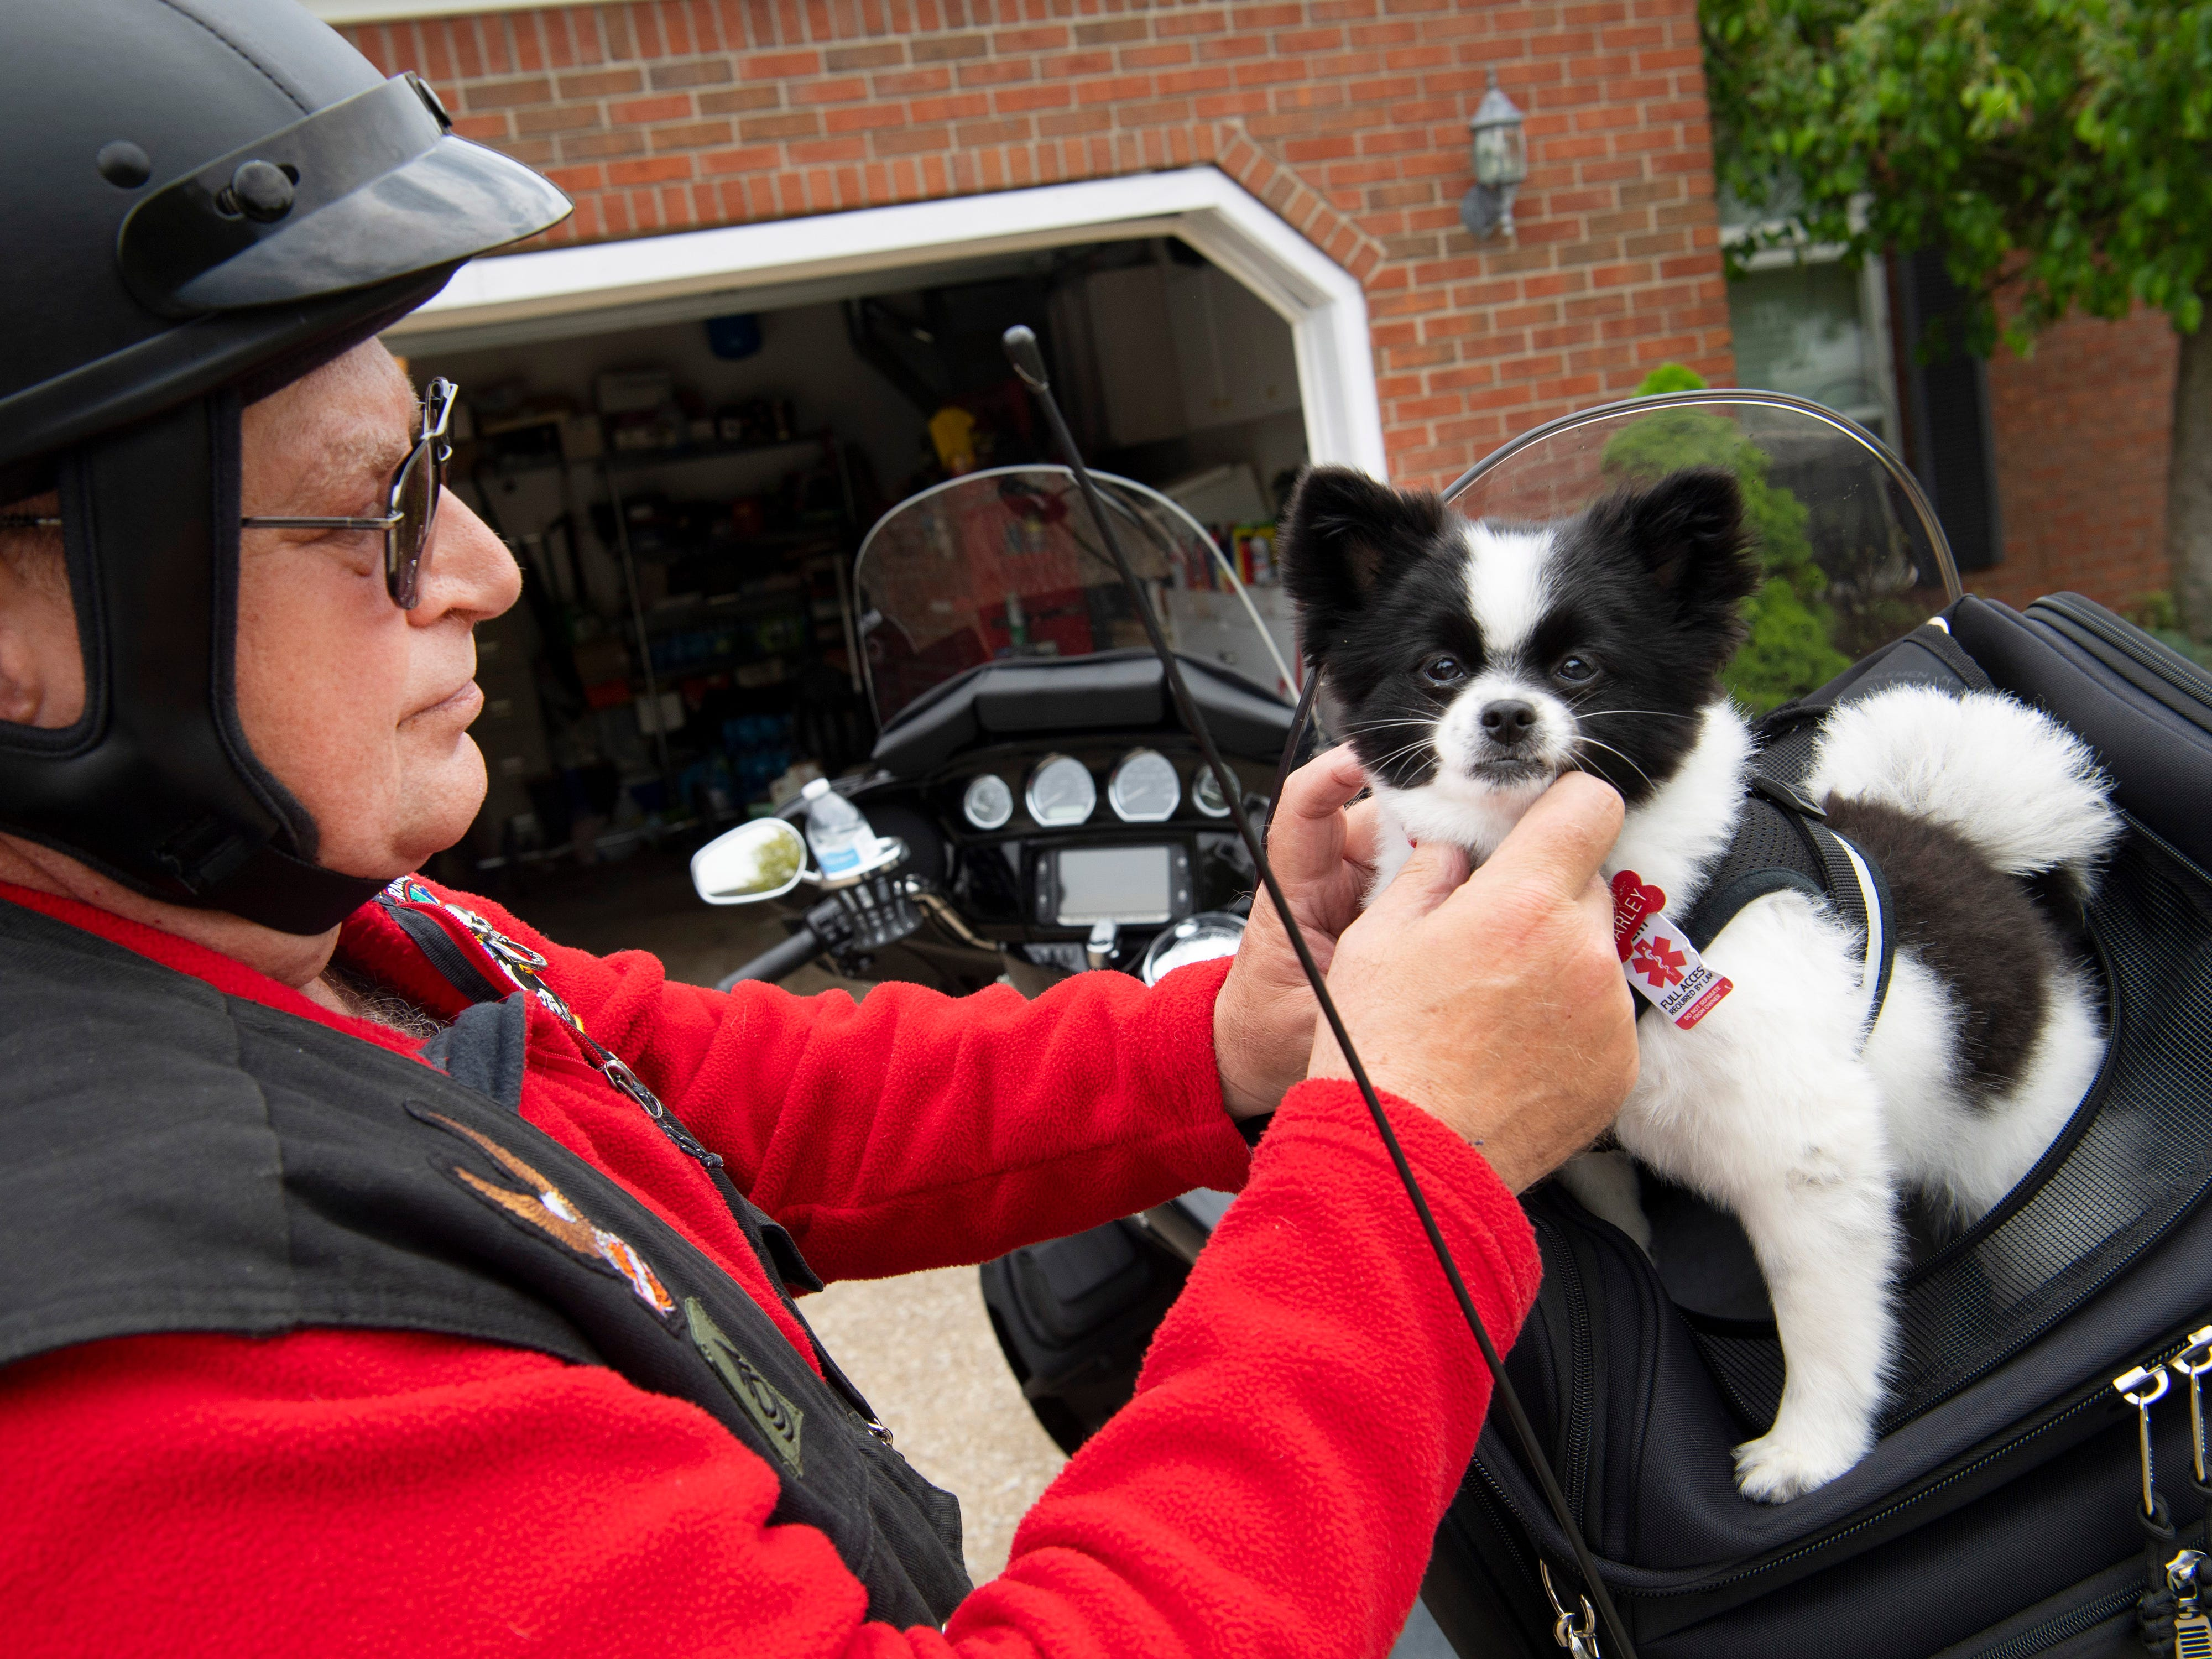 """Harley, a 6-month-old Pomeranian service dog-in-training, is unhooked by owner Charles Beach, a U.S. Army veteran and Harley-Davidson enthusiast, after a morning ride north of Evansville Monday morning. """"She wants to ride all the time,"""" Beach said. """"Every time I come out here, she jumps beside the motorcycle and stands there.""""  The pup didn't start out sitting on the back of Beach's Harley-Davidson Electra Glide Ultra Classic motorcycle. In the beginning, Harley Girl was zipped up safely inside the carrier. Now, after the addition of her own windshield, the close-shorn Pomeranian sits up tall on their rides.  """"Me and Harley, we go just about everywhere,"""" Beach said. """"I don't go anywhere without her. She has four more months and then she'll be out of training and be a full-service dog. We'll go on some big rides then."""""""